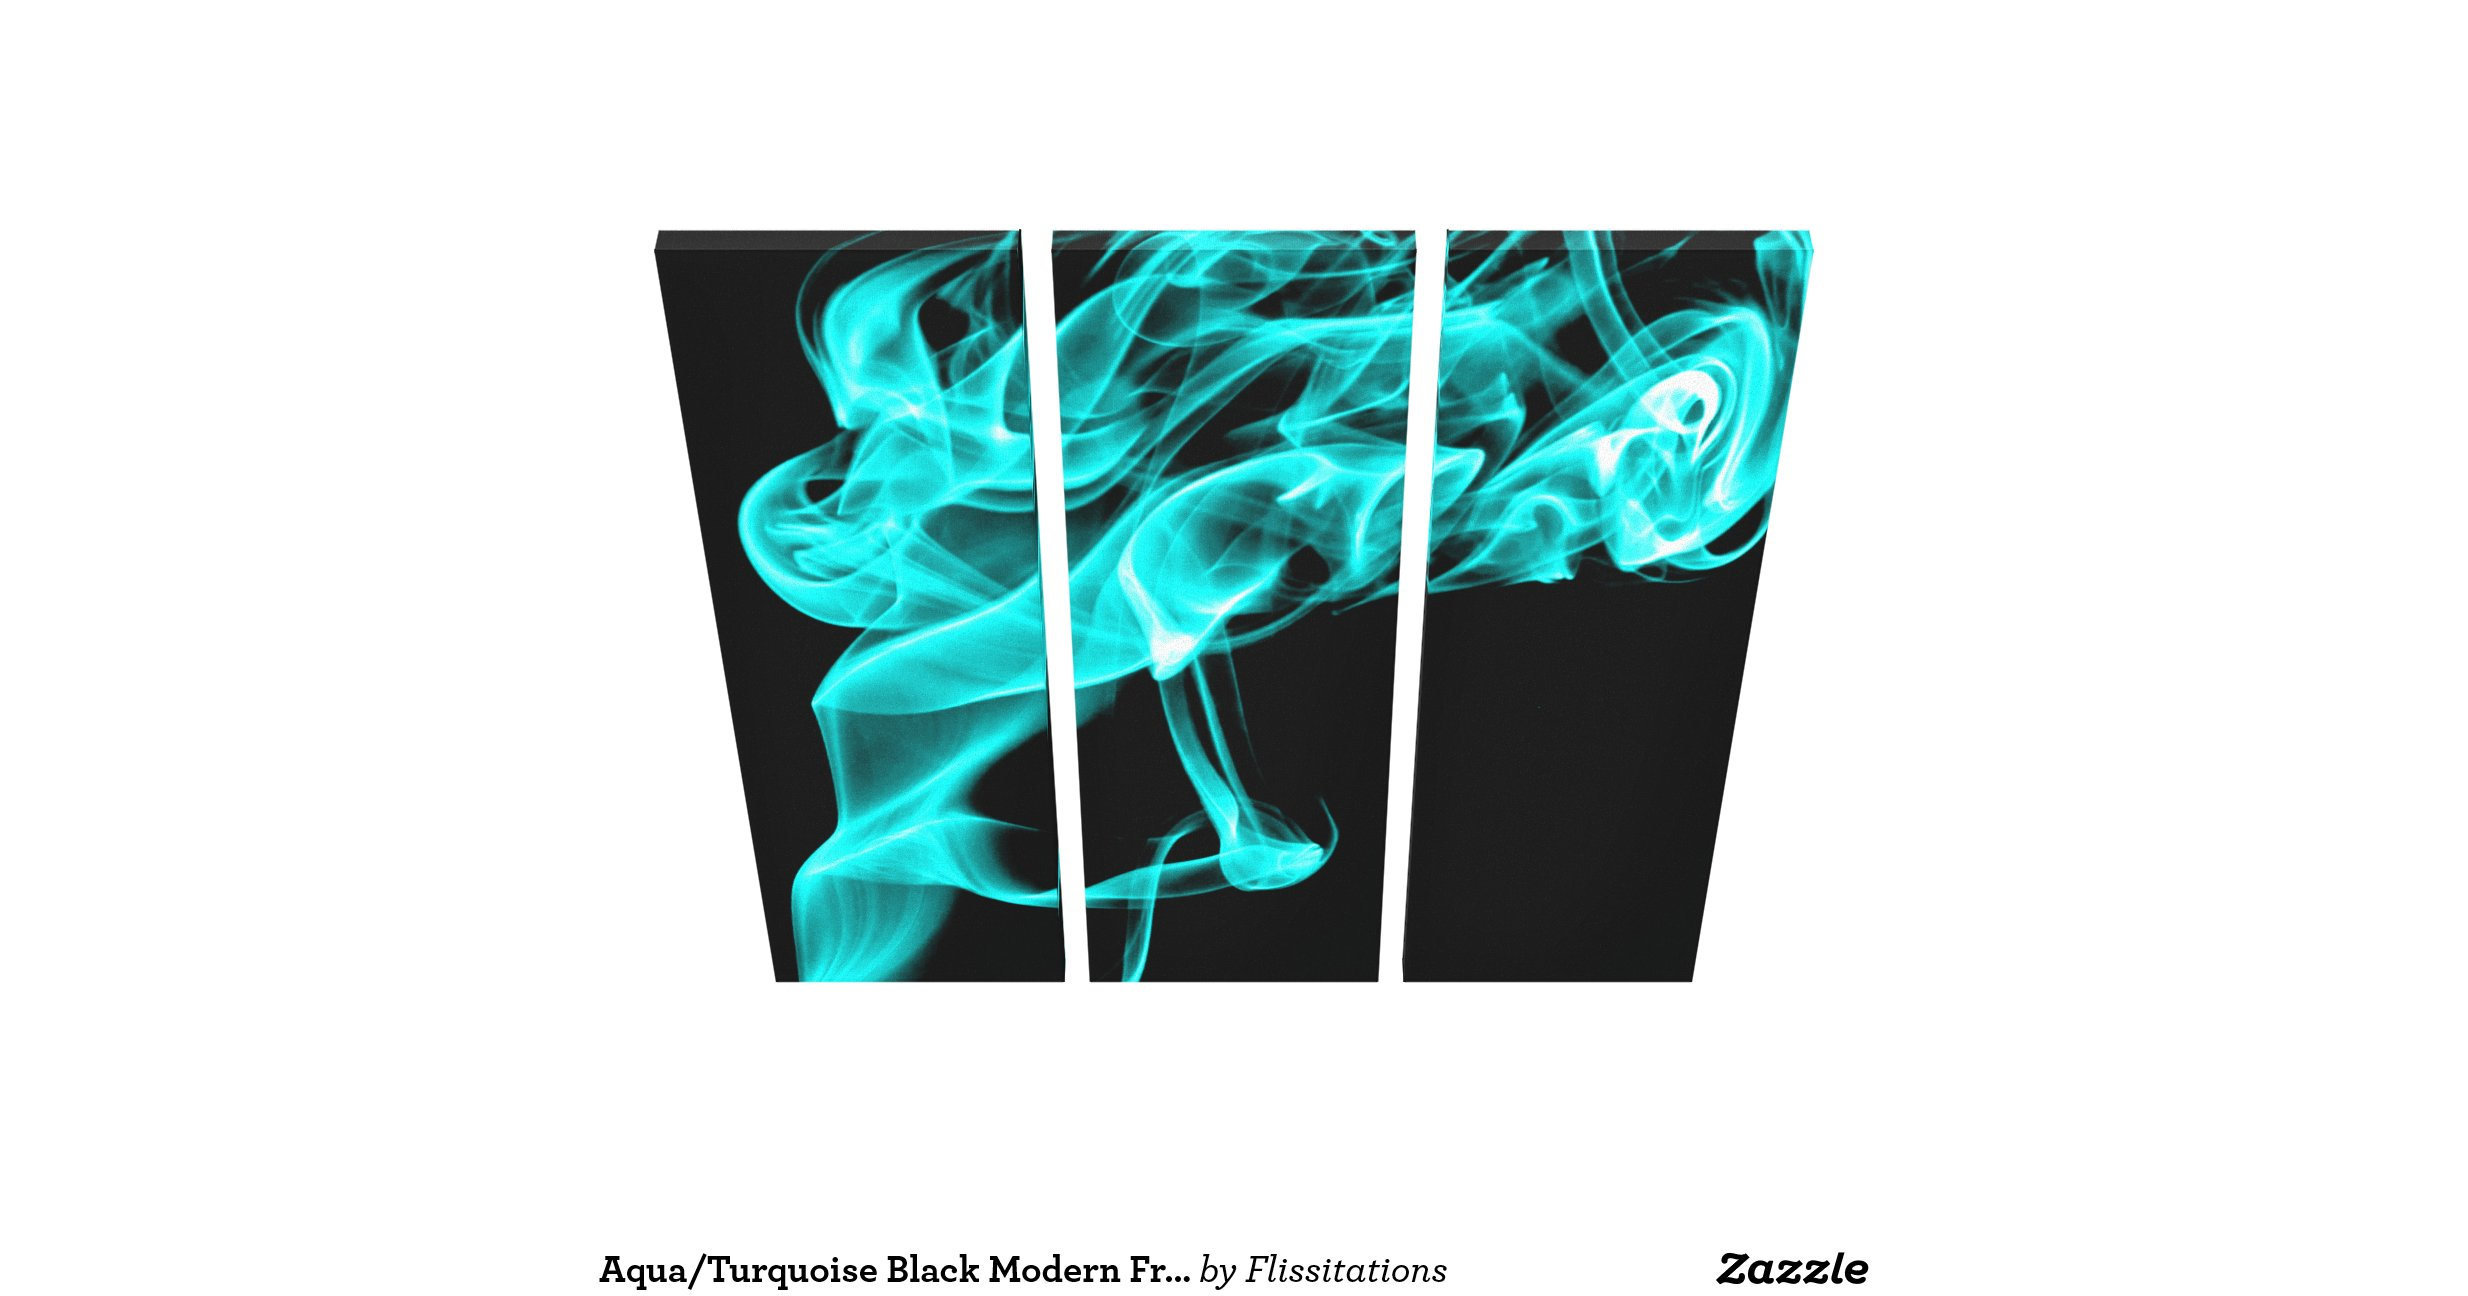 Aqua turquoise black modern fractal art wall decor gallery for Turquoise wall decor